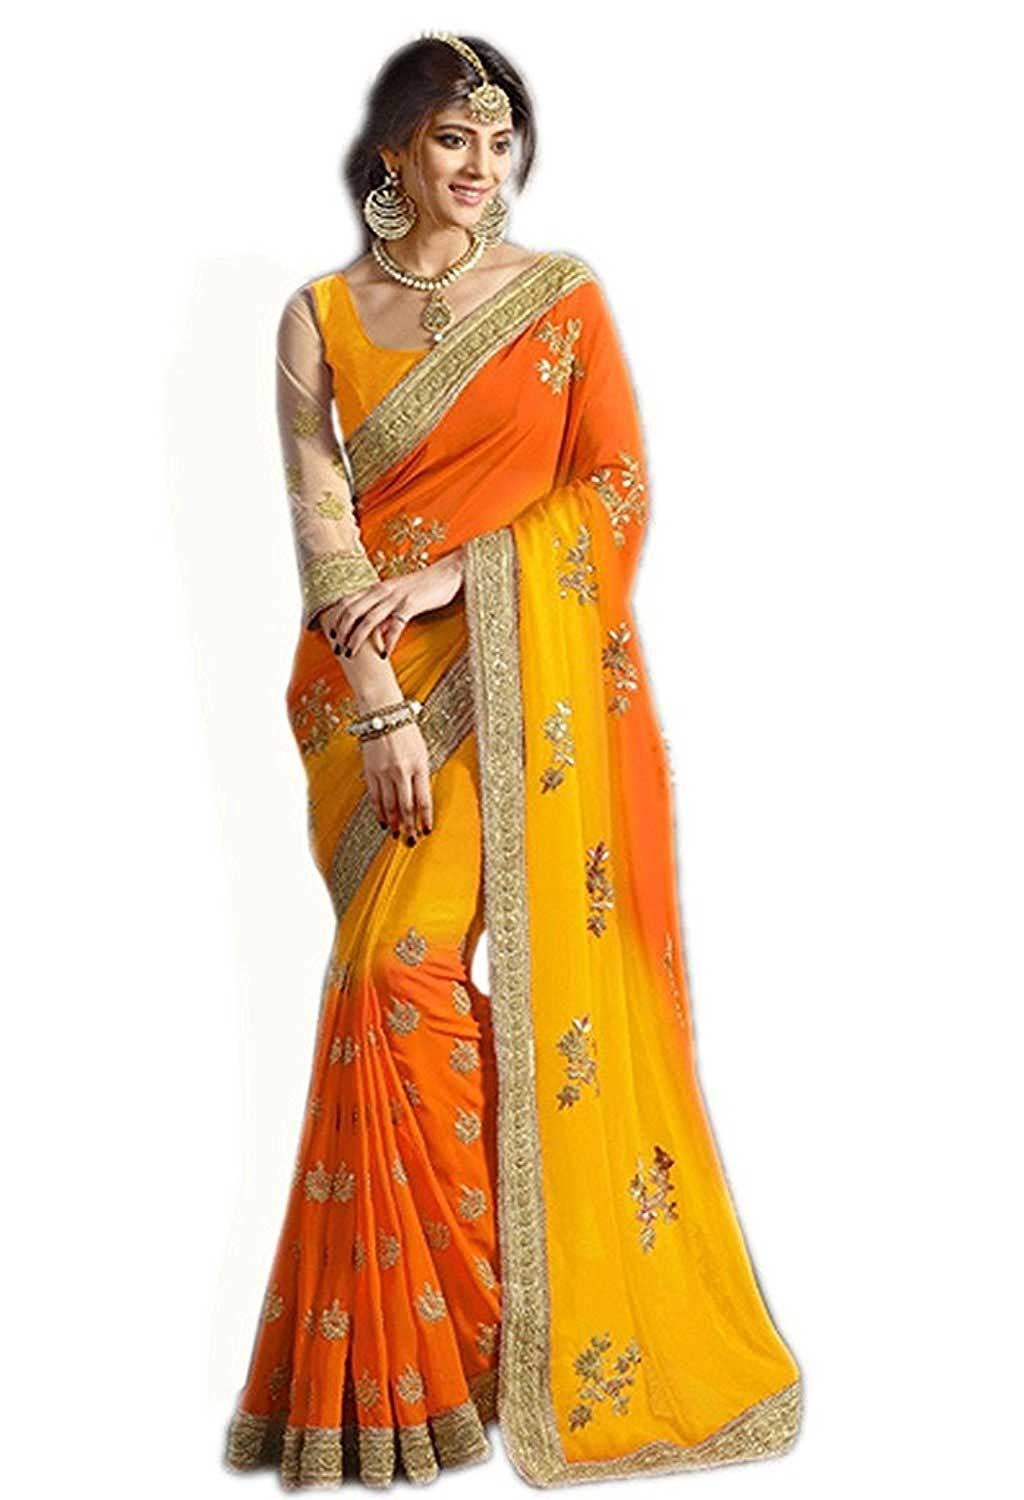 Panchratna Women's Embroidered Red-Coding Georgette Saree With Blouse Material